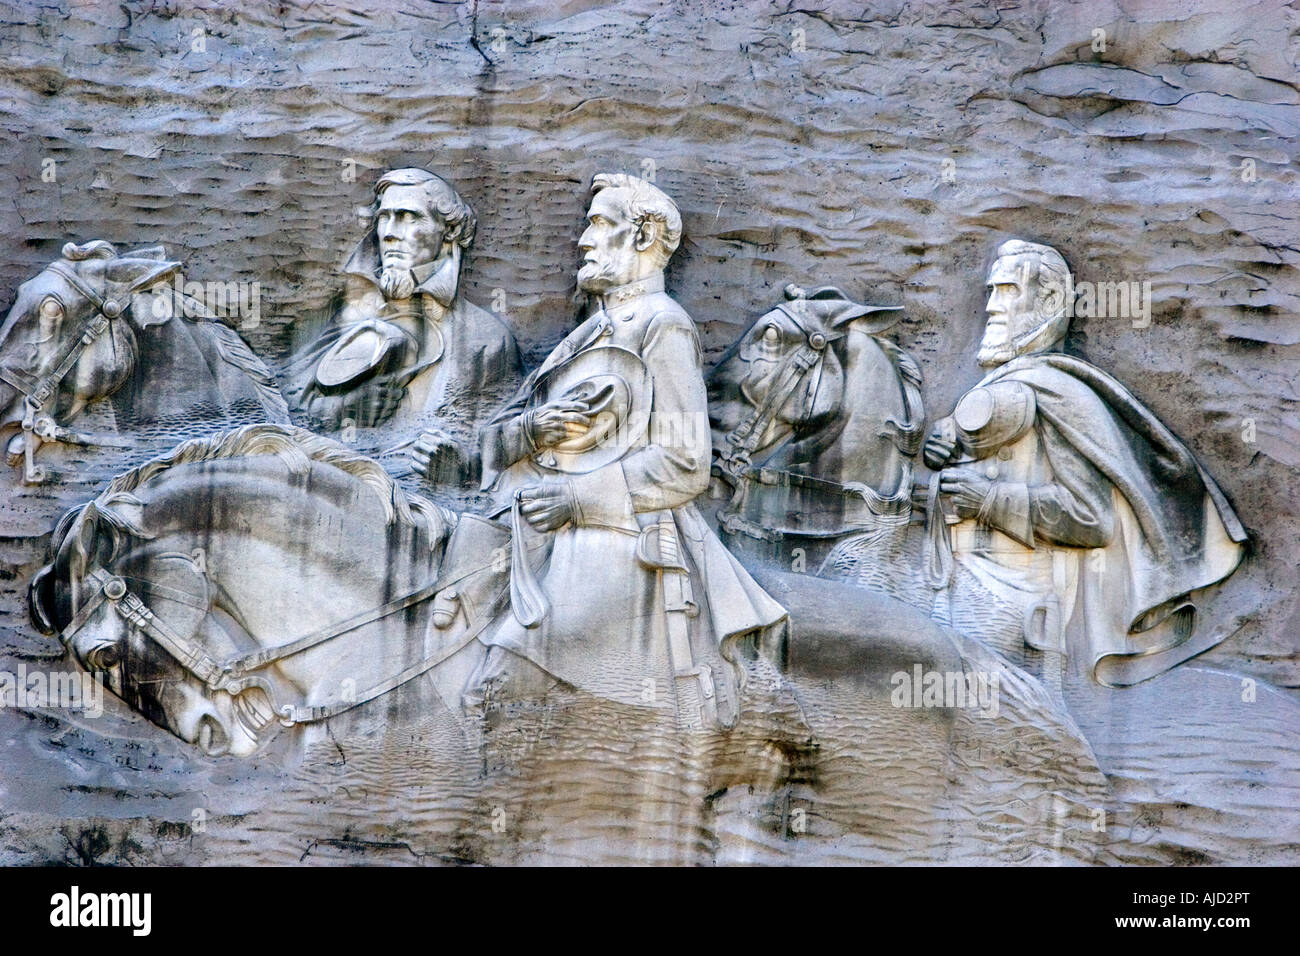 Carving of stonewall jackson robert e lee and jefferson